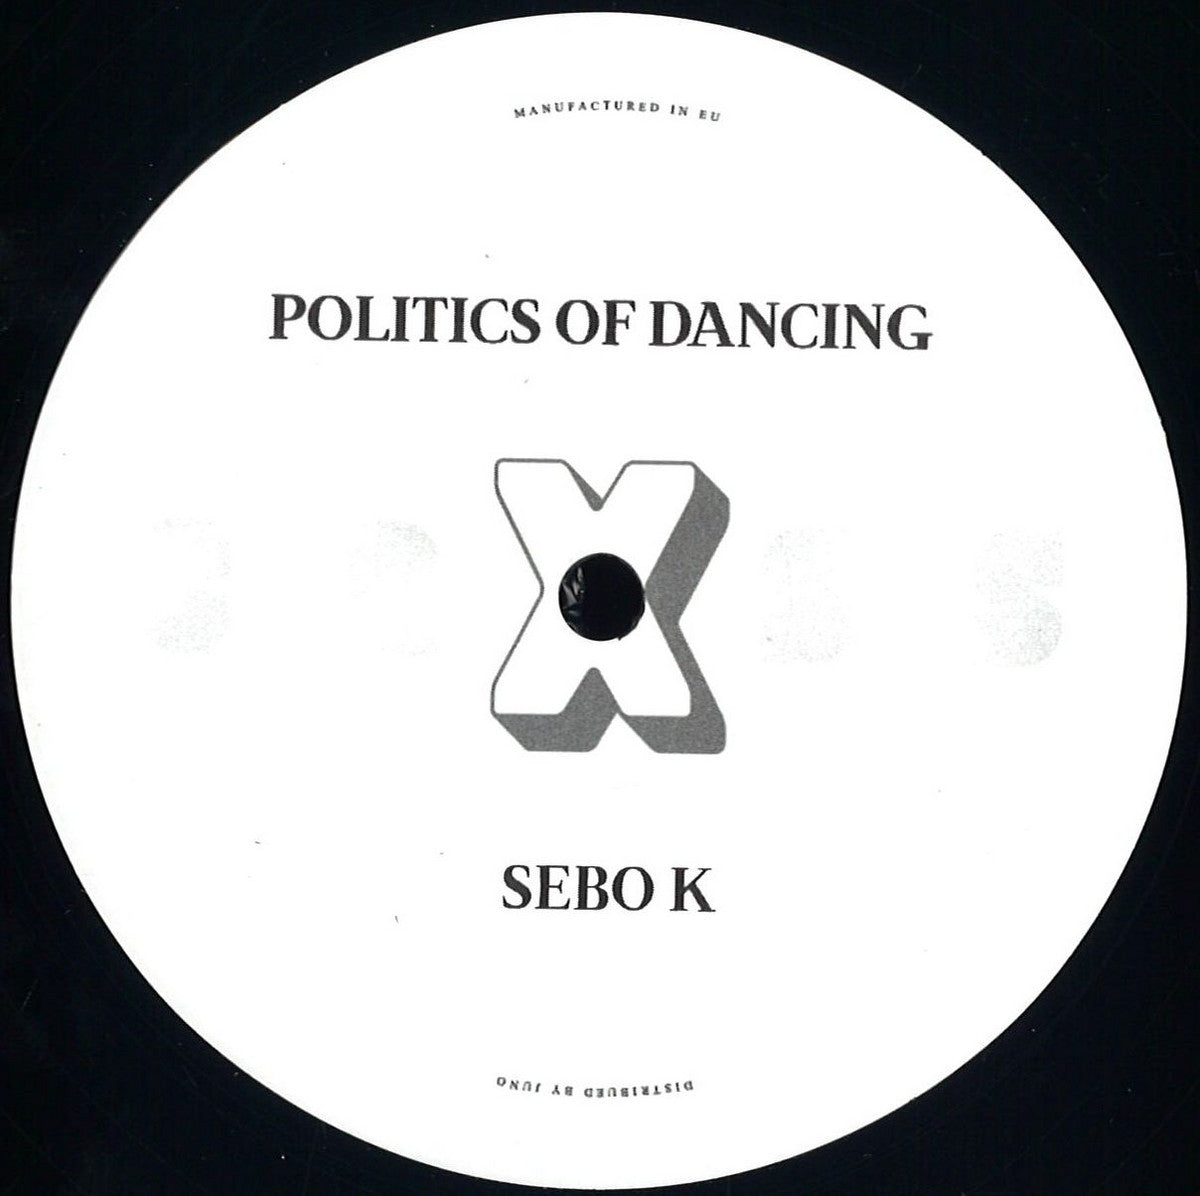 "Politics Of Dancing Cab Drivers Sebo K  : Politics Of Dancing X : PODCROSS003 - 12"", Vinyl"